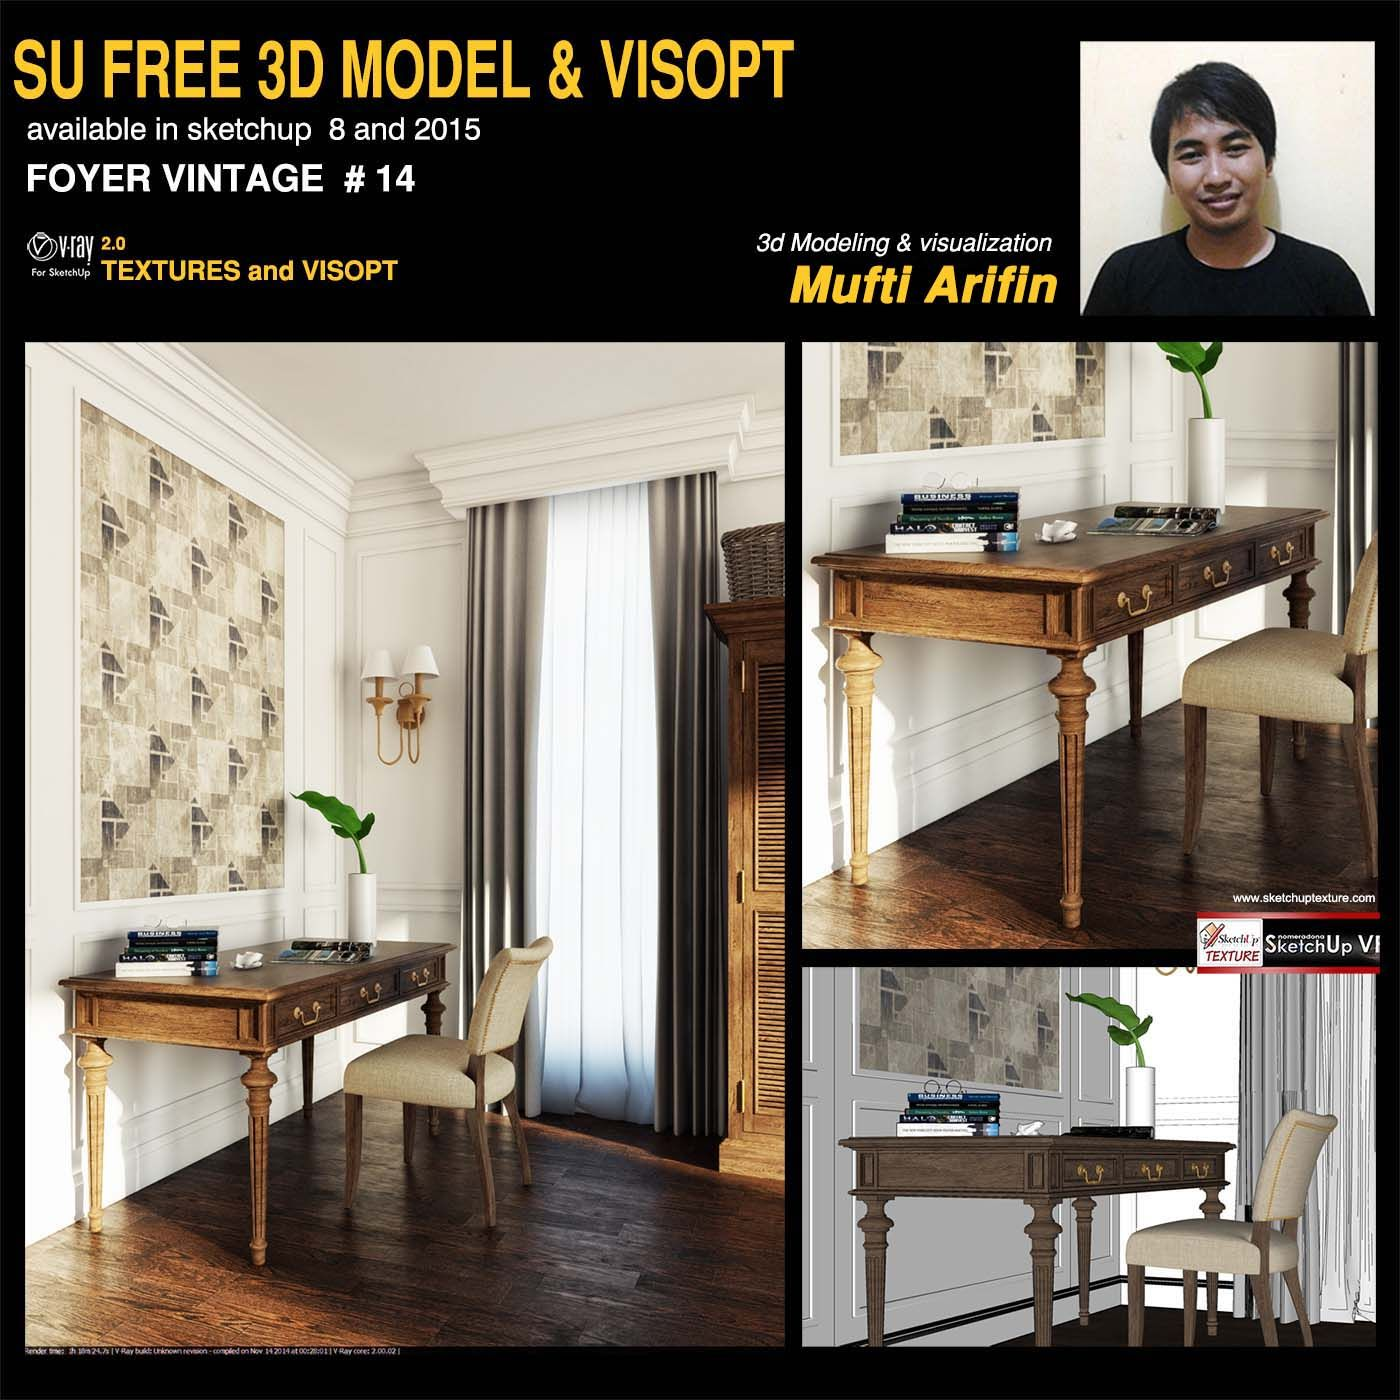 Free sketchup model foyer vintage #14 by Mufti Arifin-and -vray